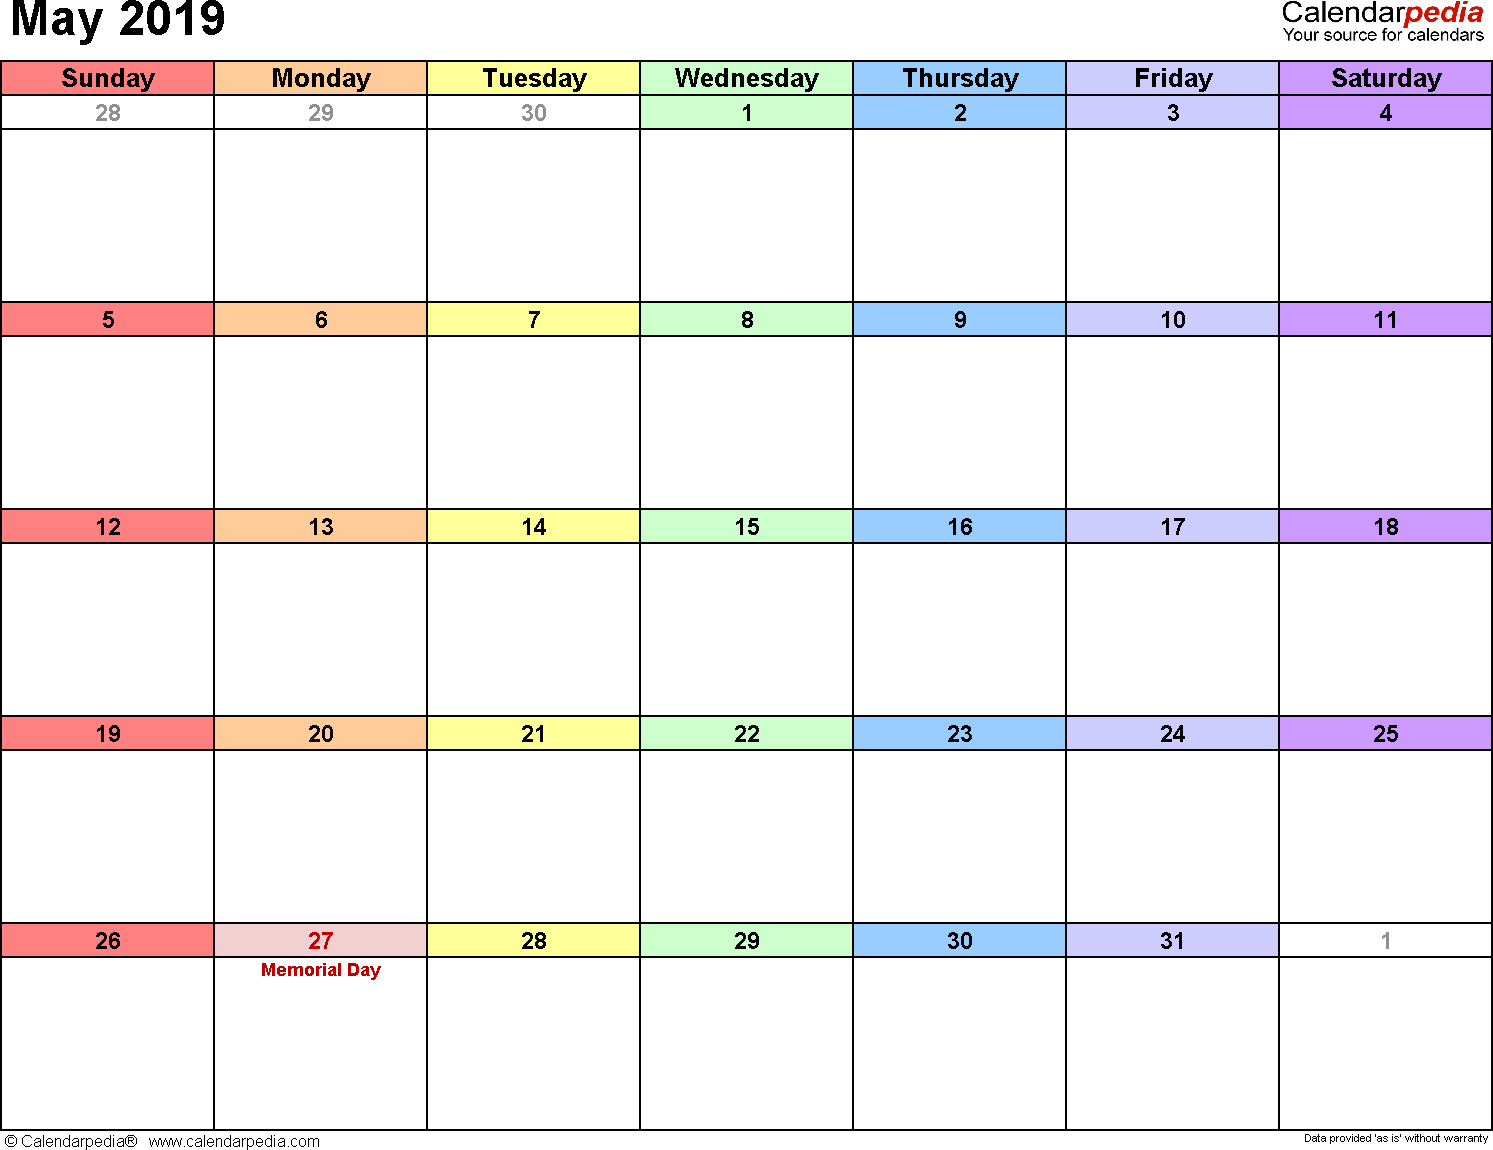 May 2019 Calendars for Word, Excel & PDF